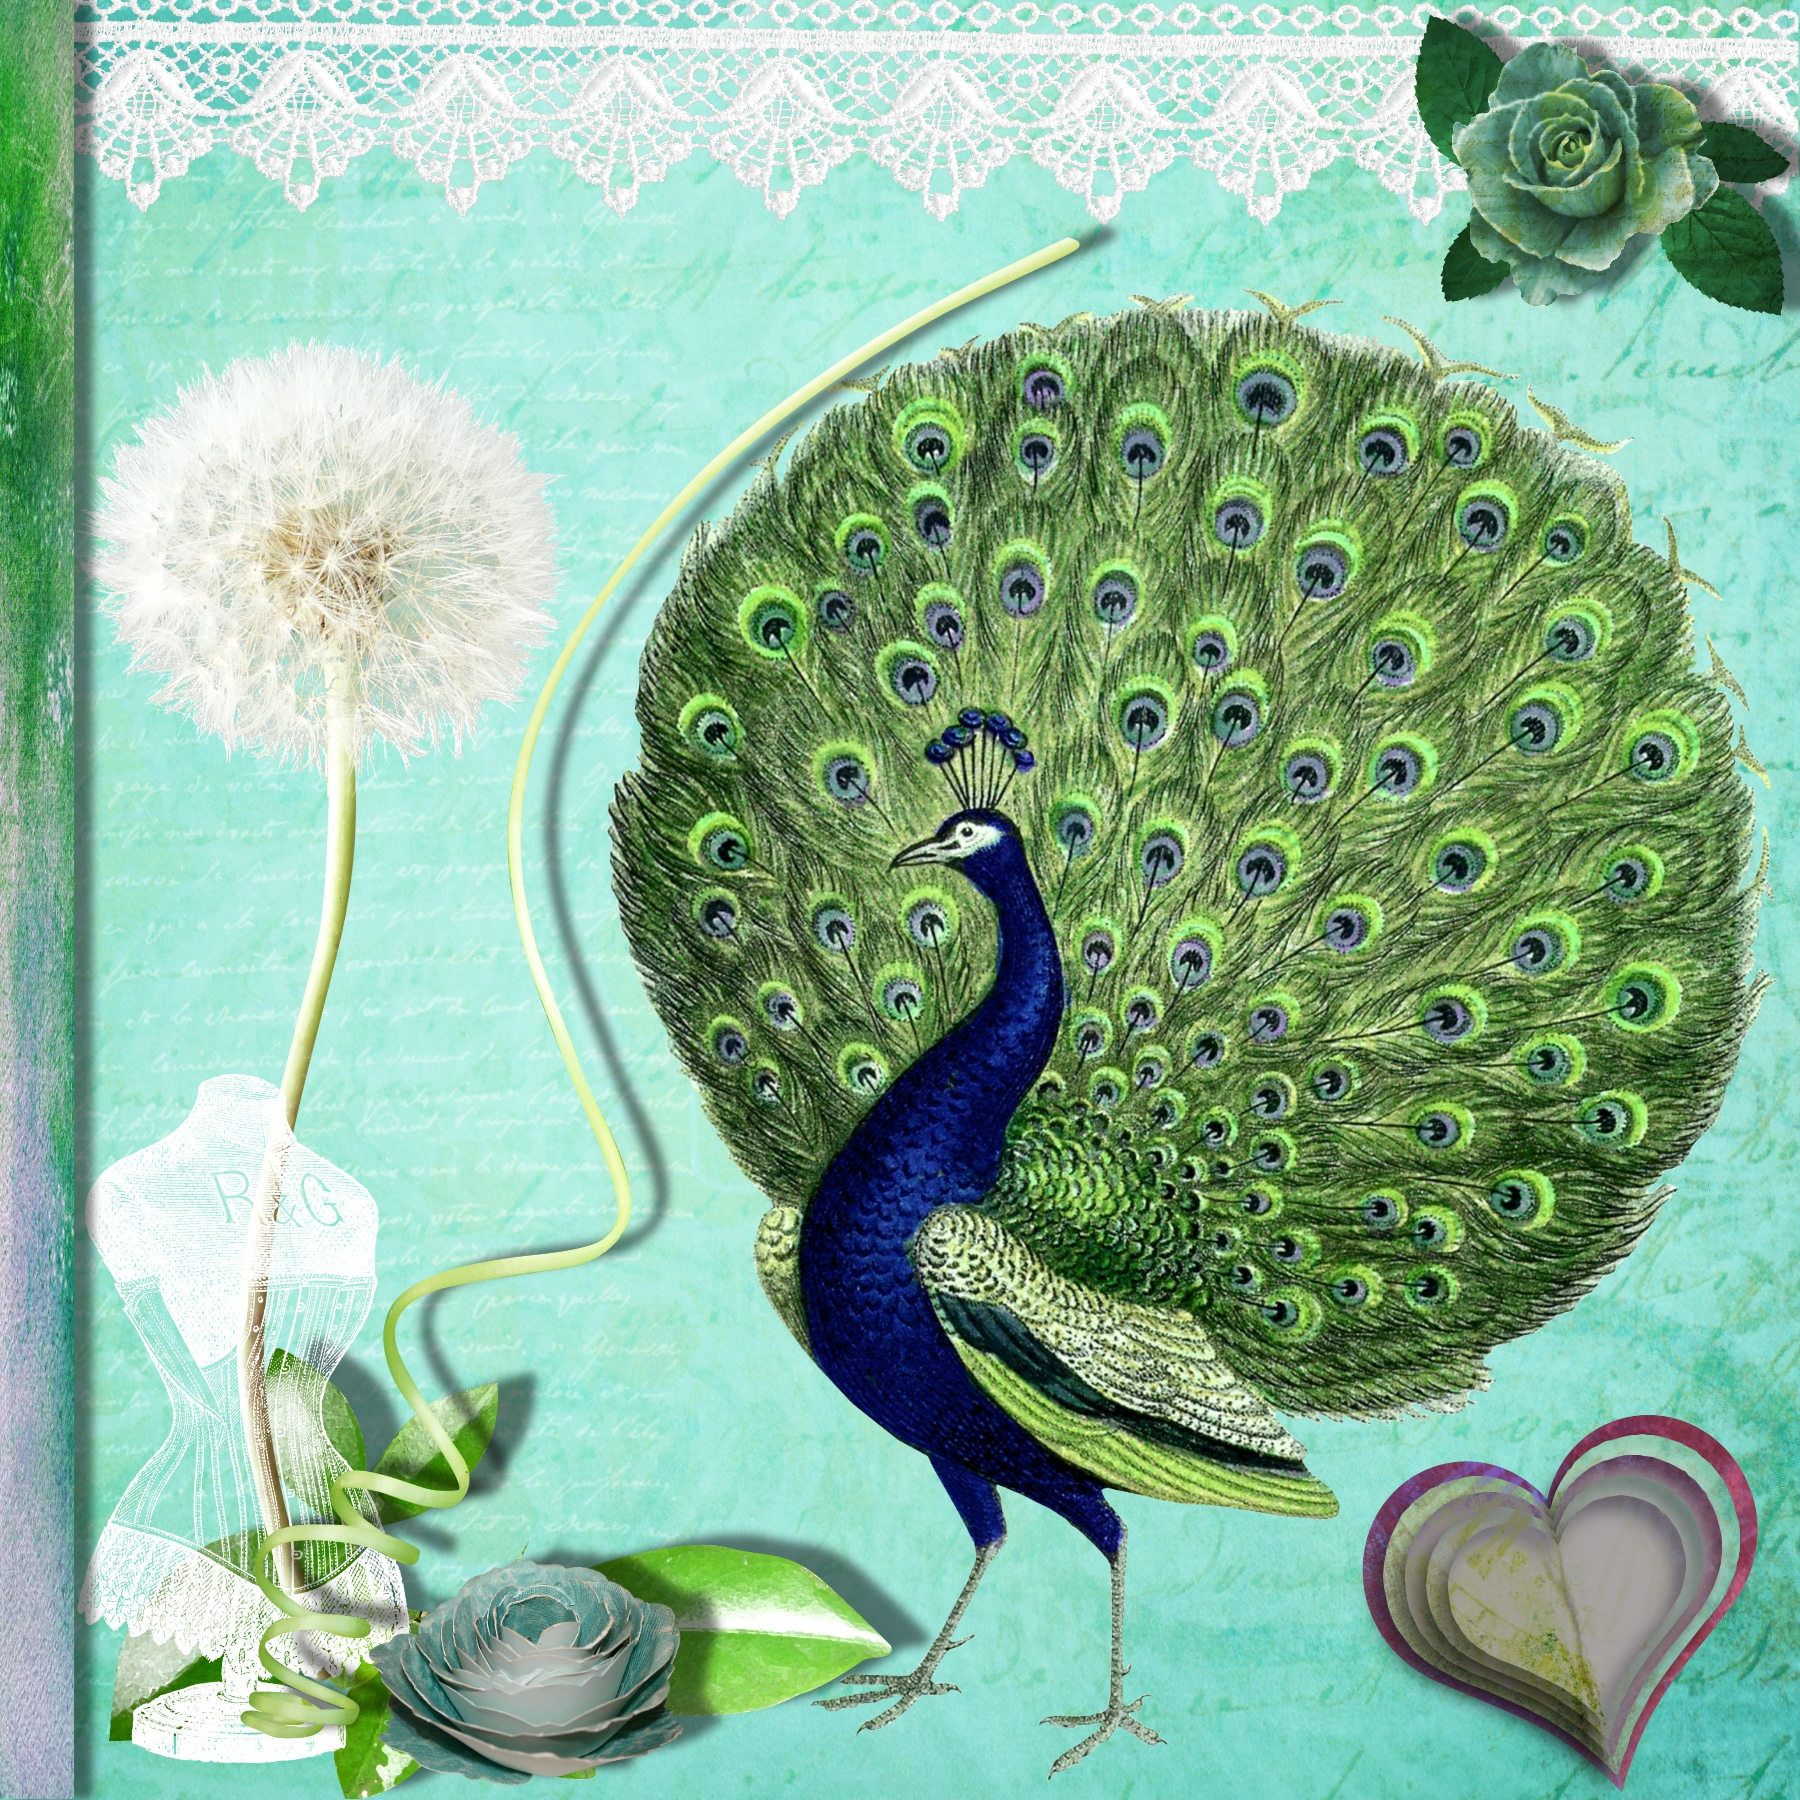 Peacocks and Lace 2.jpg